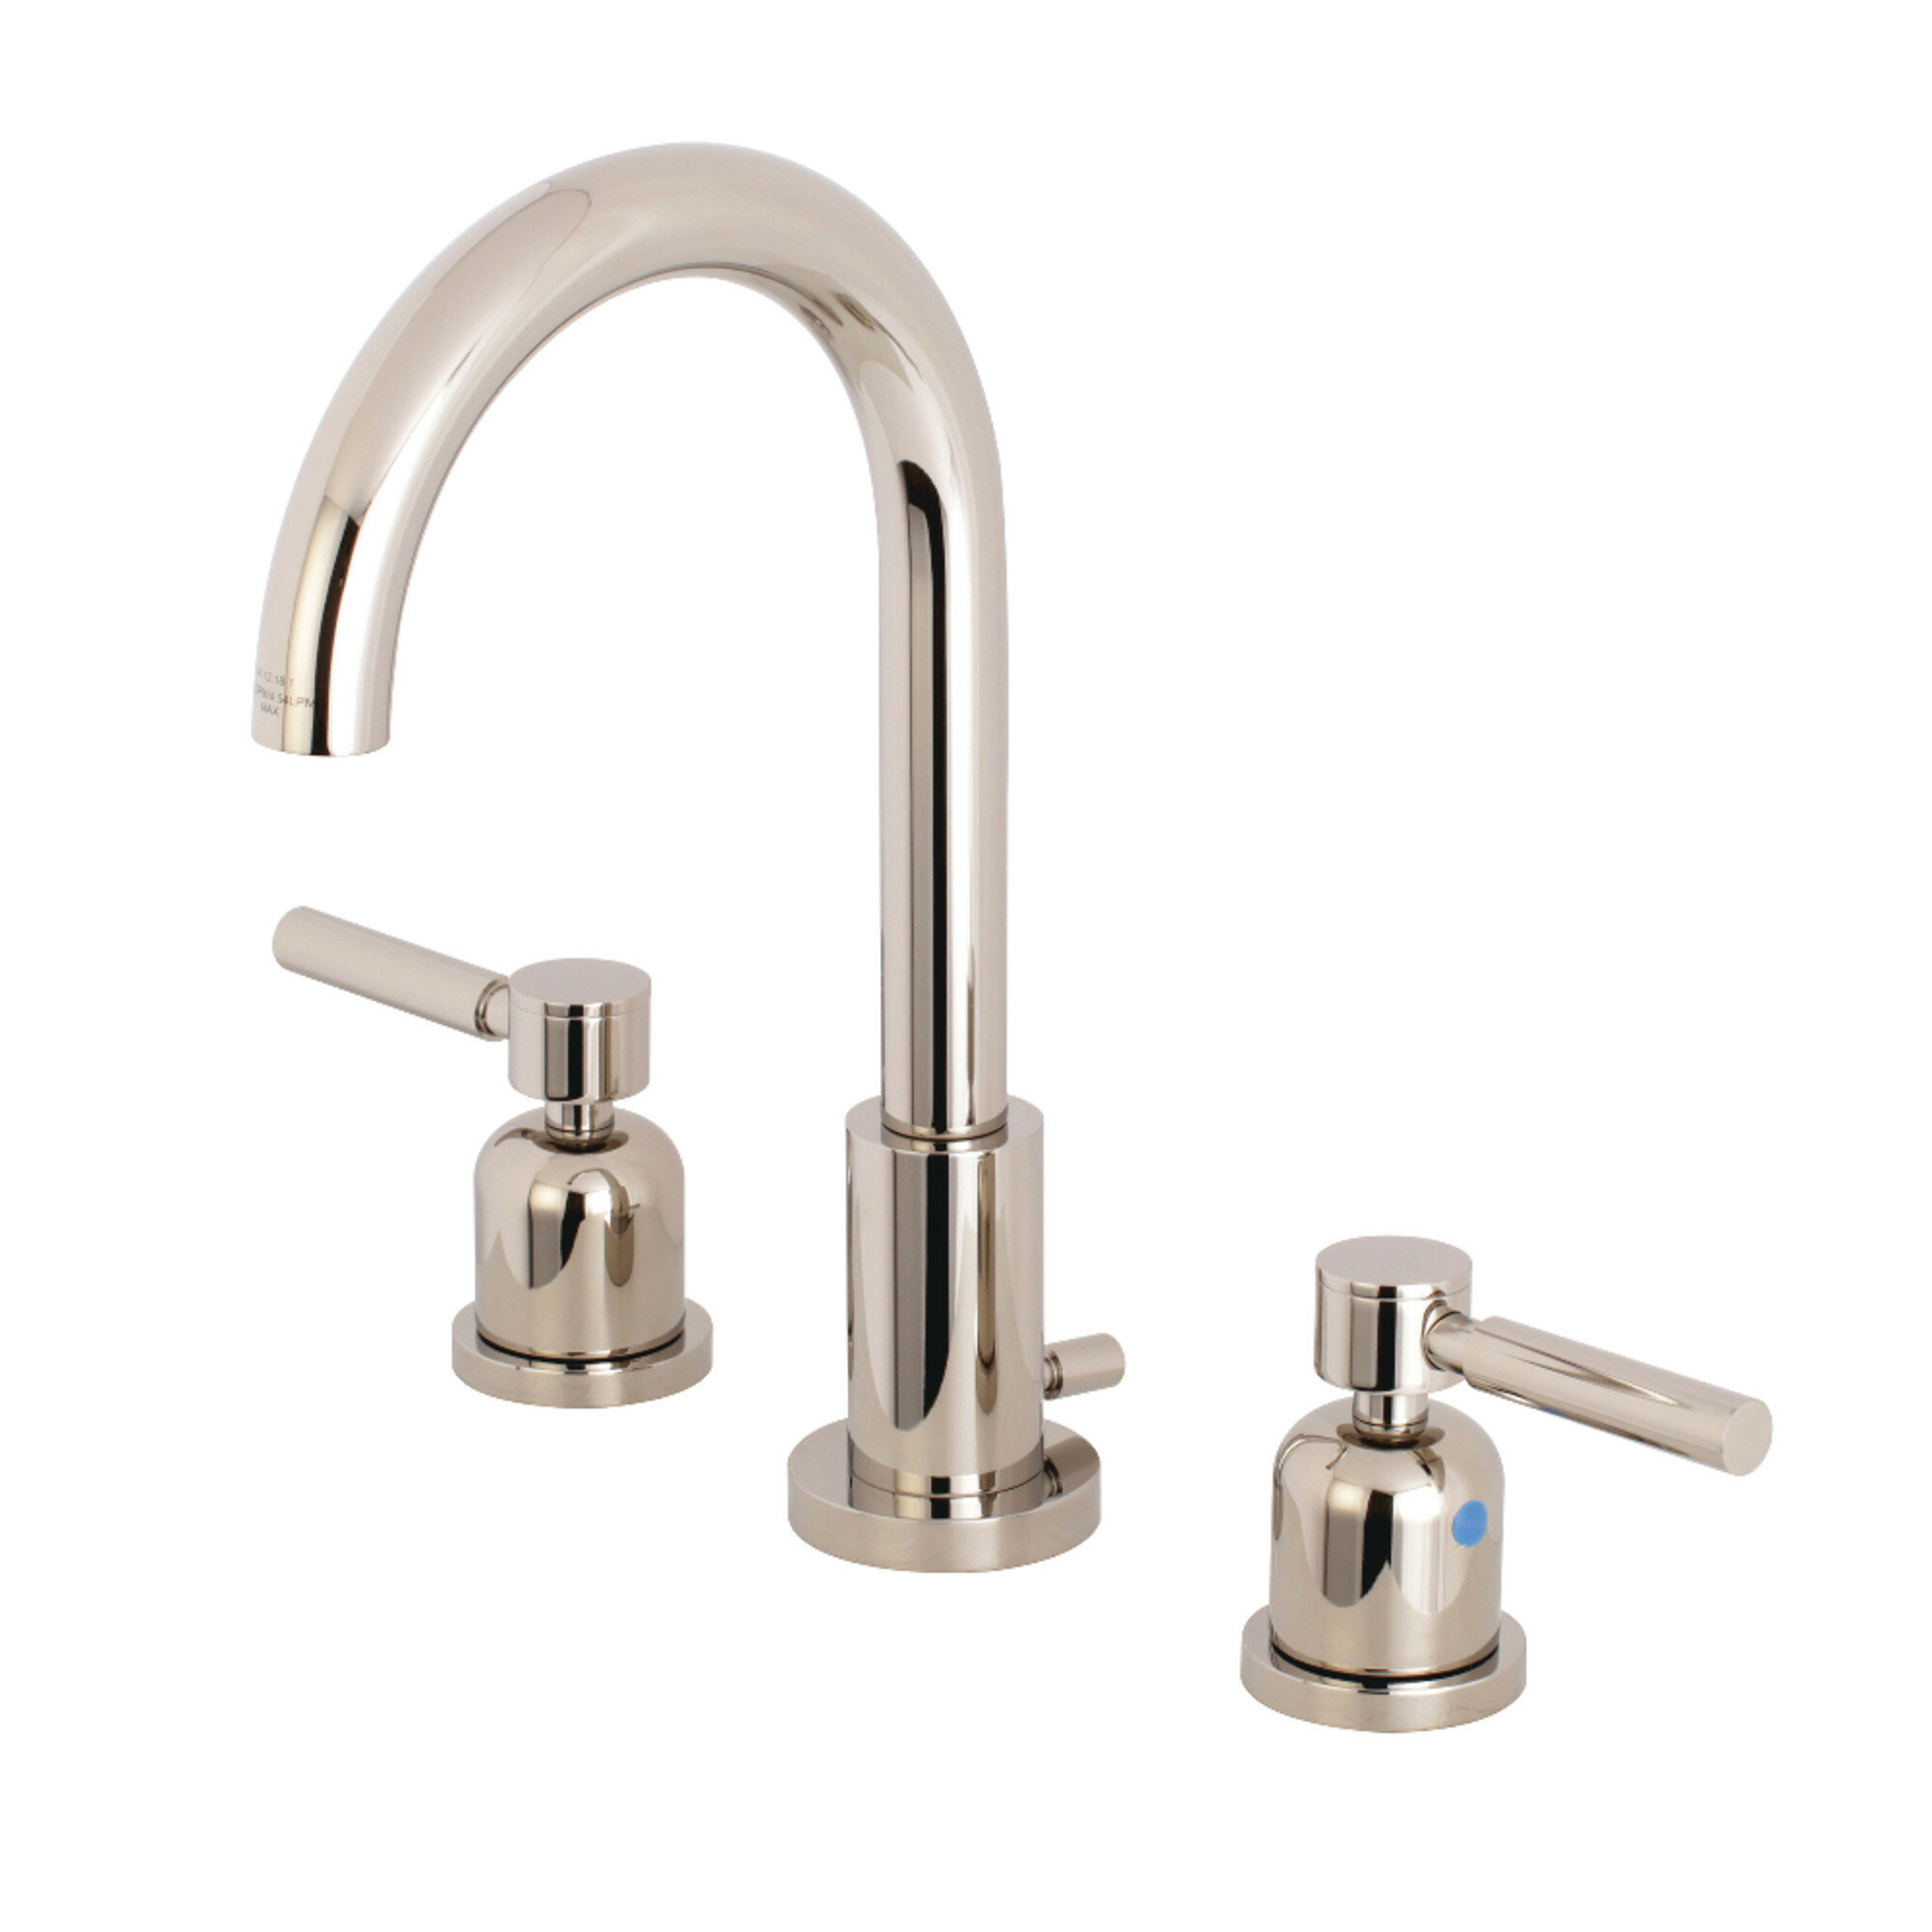 Kingston Brass Widespread Bathroom Faucet With Drain Assembly Reviews Wayfair